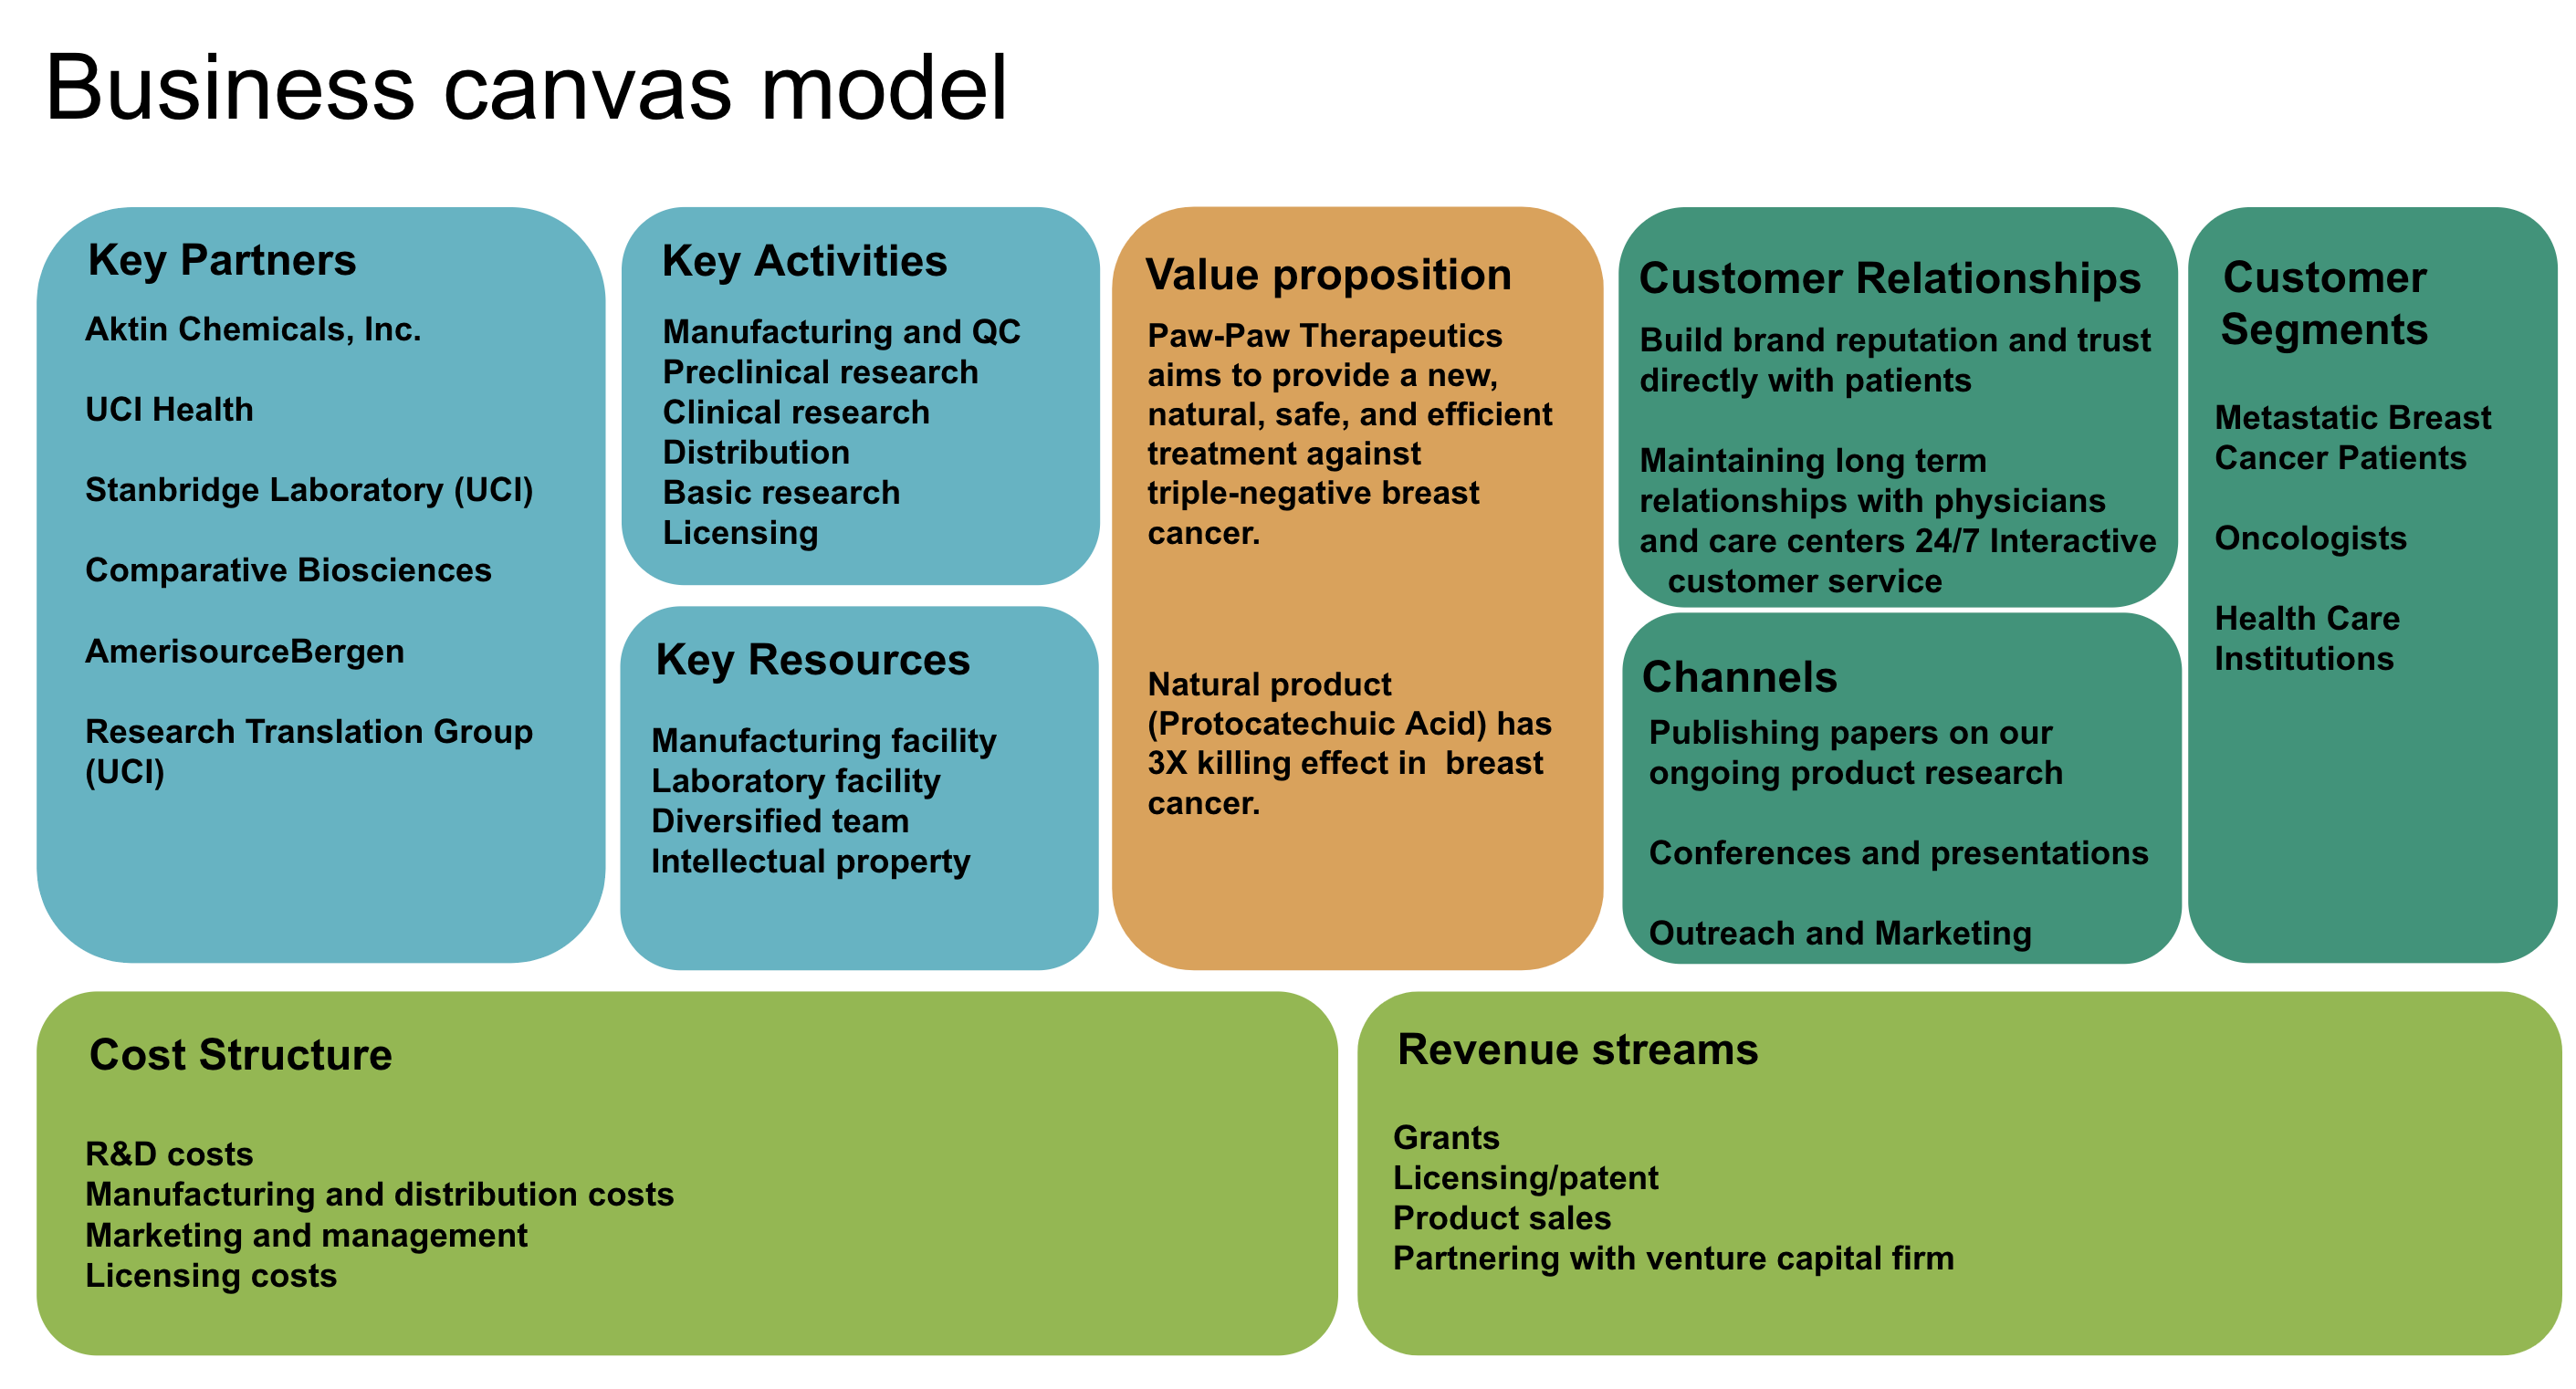 a screenshot of the business canvas model